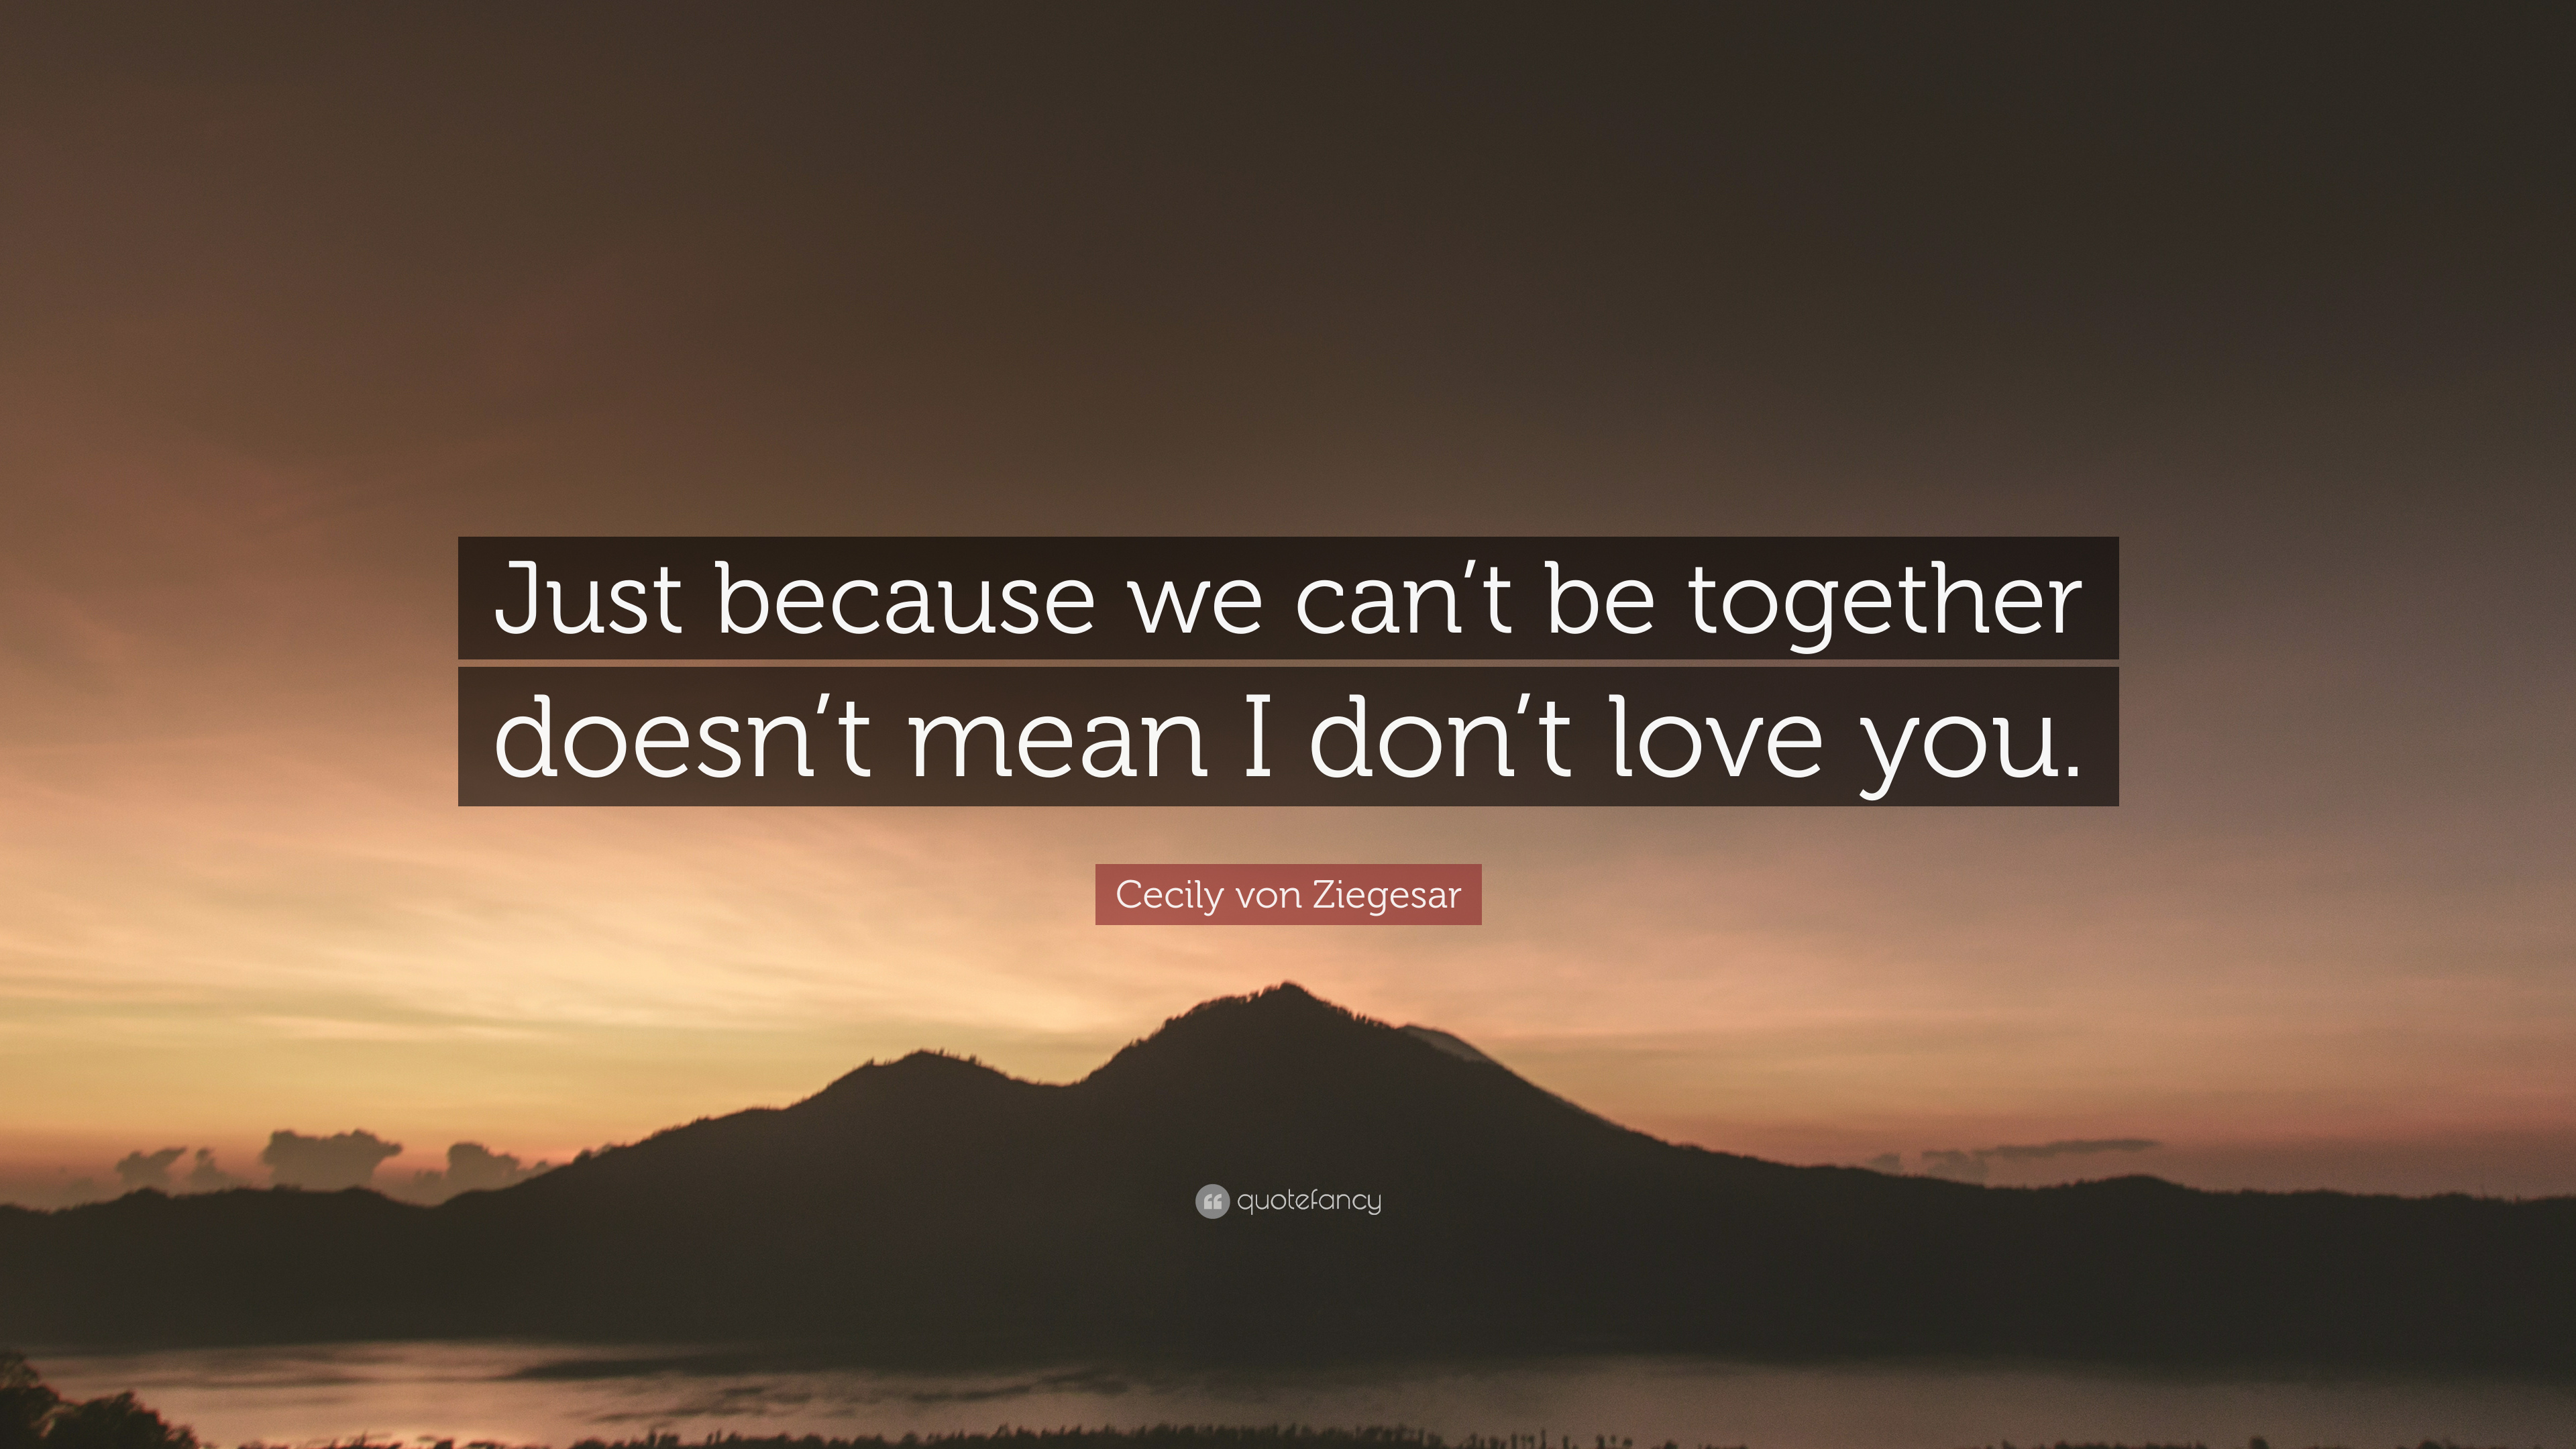 Cecily von Ziegesar Quote: Just because we cant be